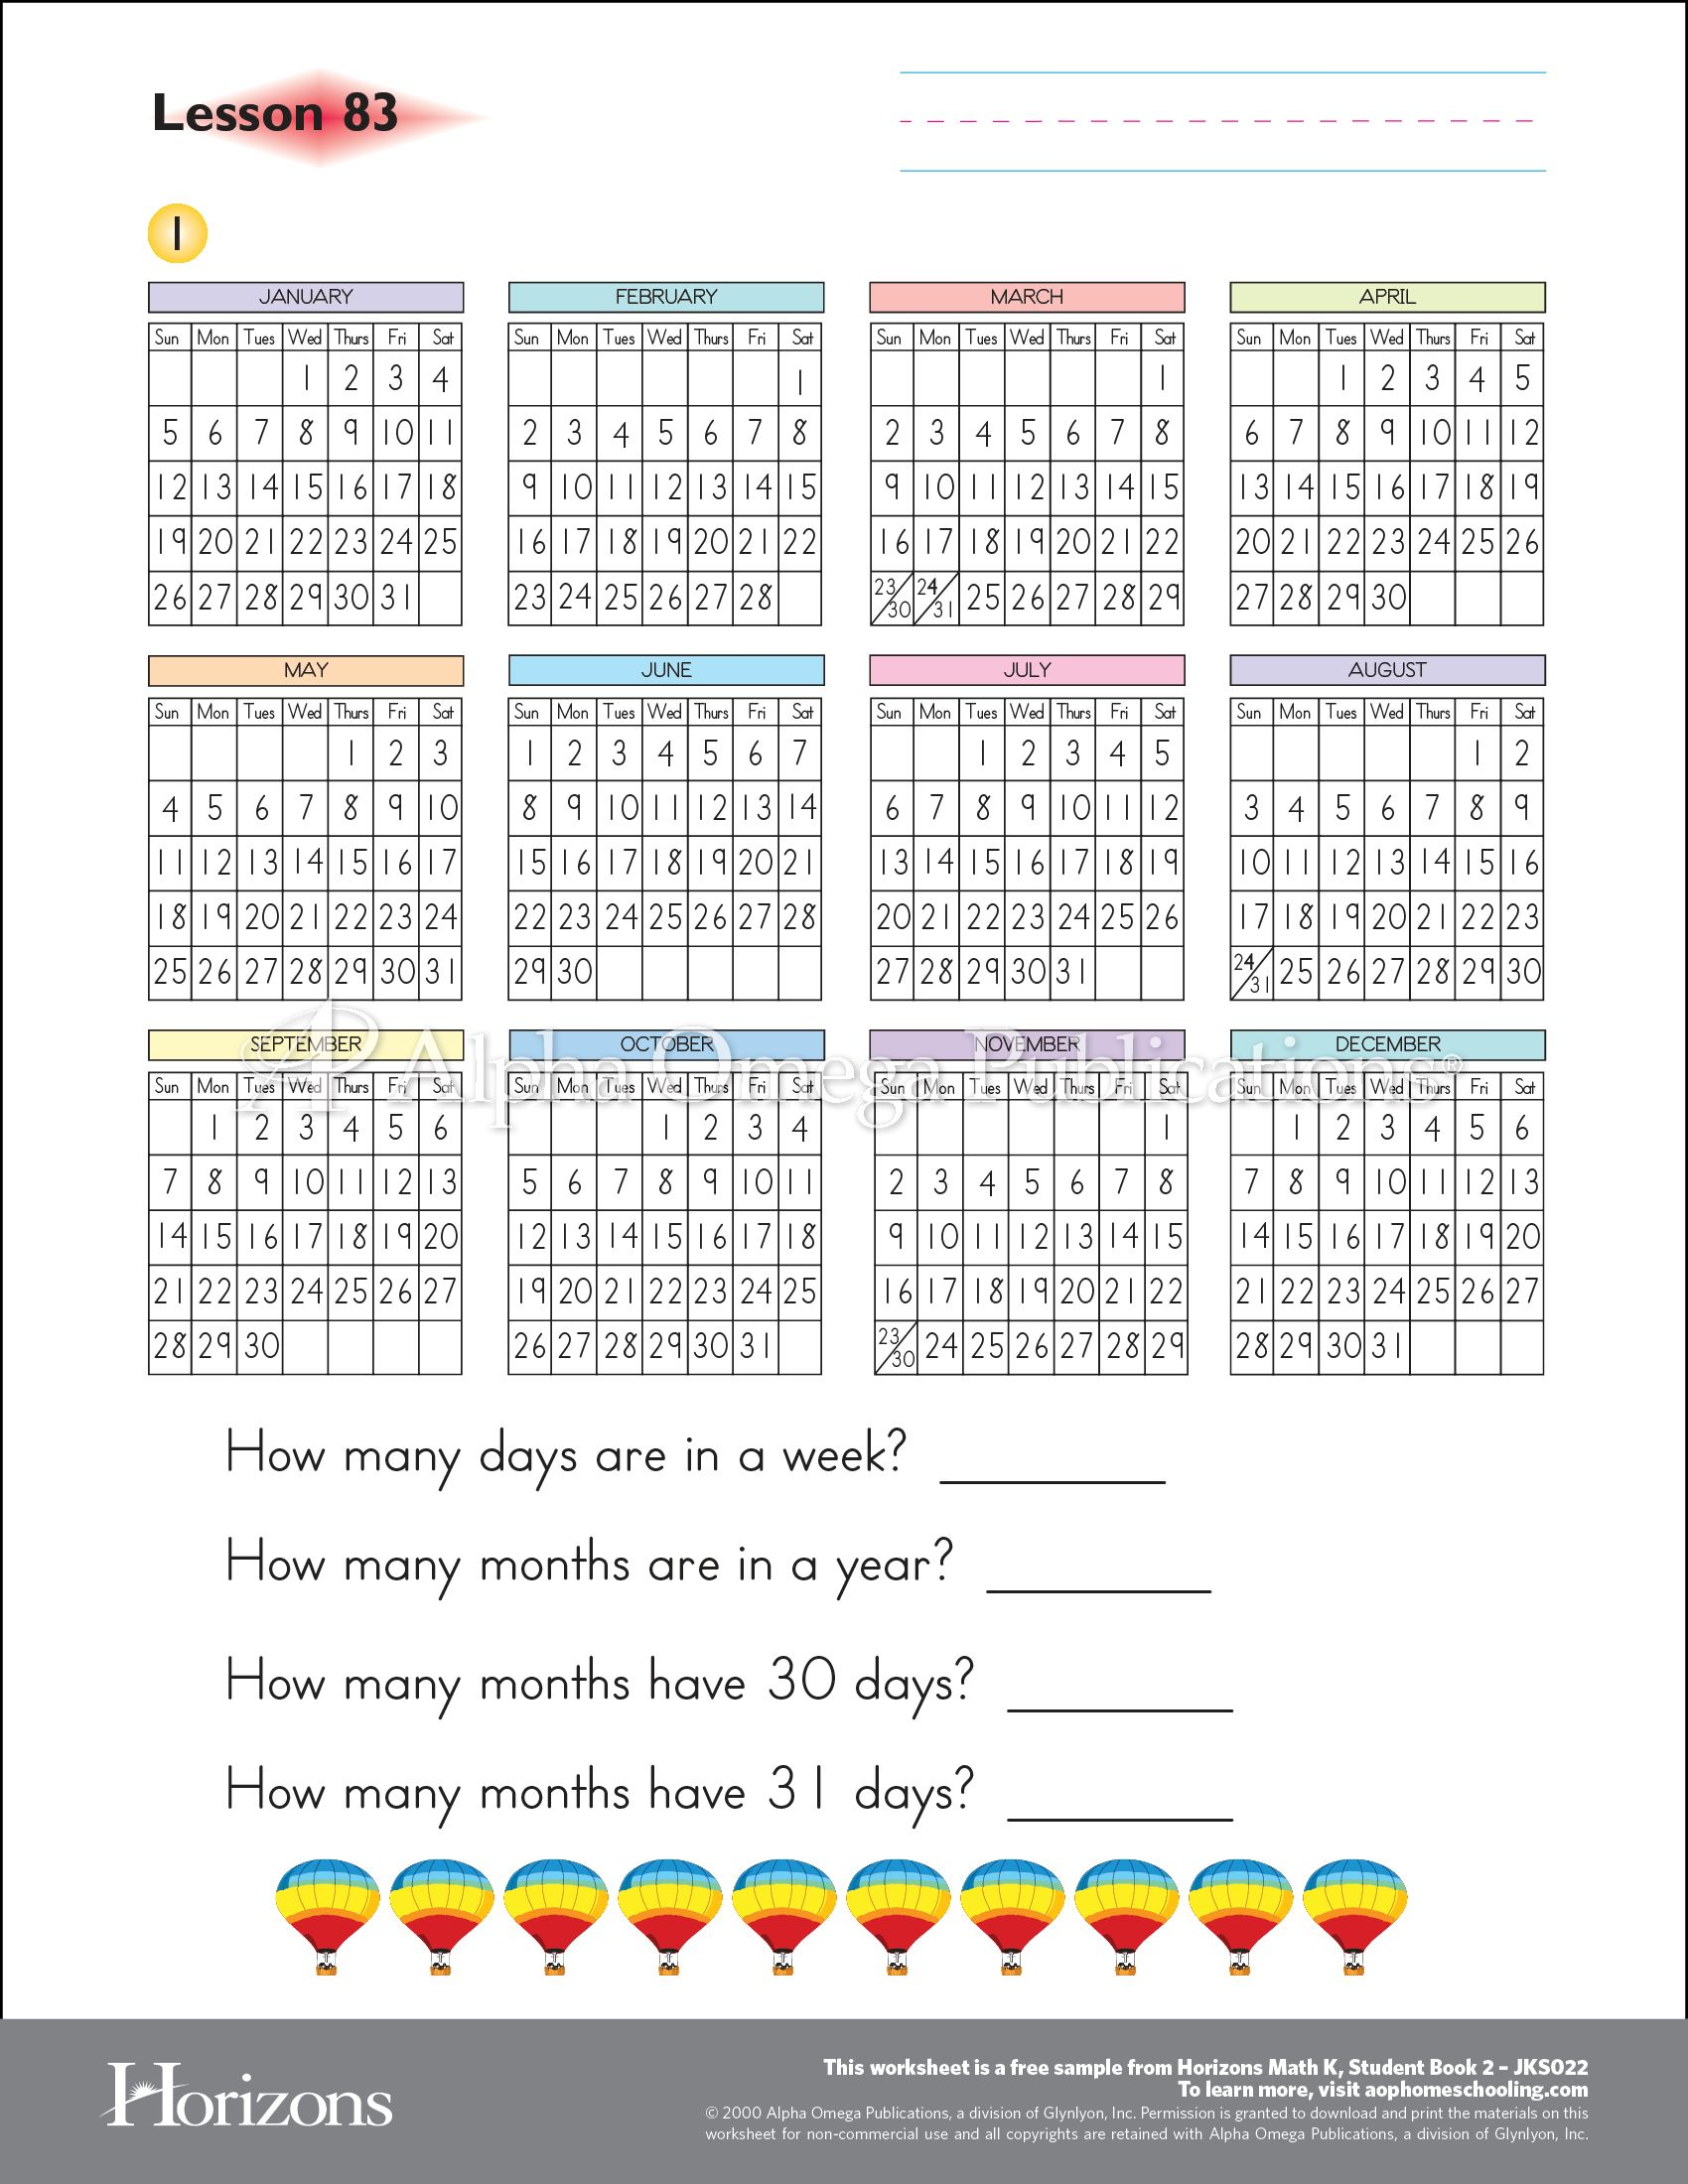 Horizons Kindergarten Math Aop Sample Worksheet Curriculum Download Printable Homeschooling